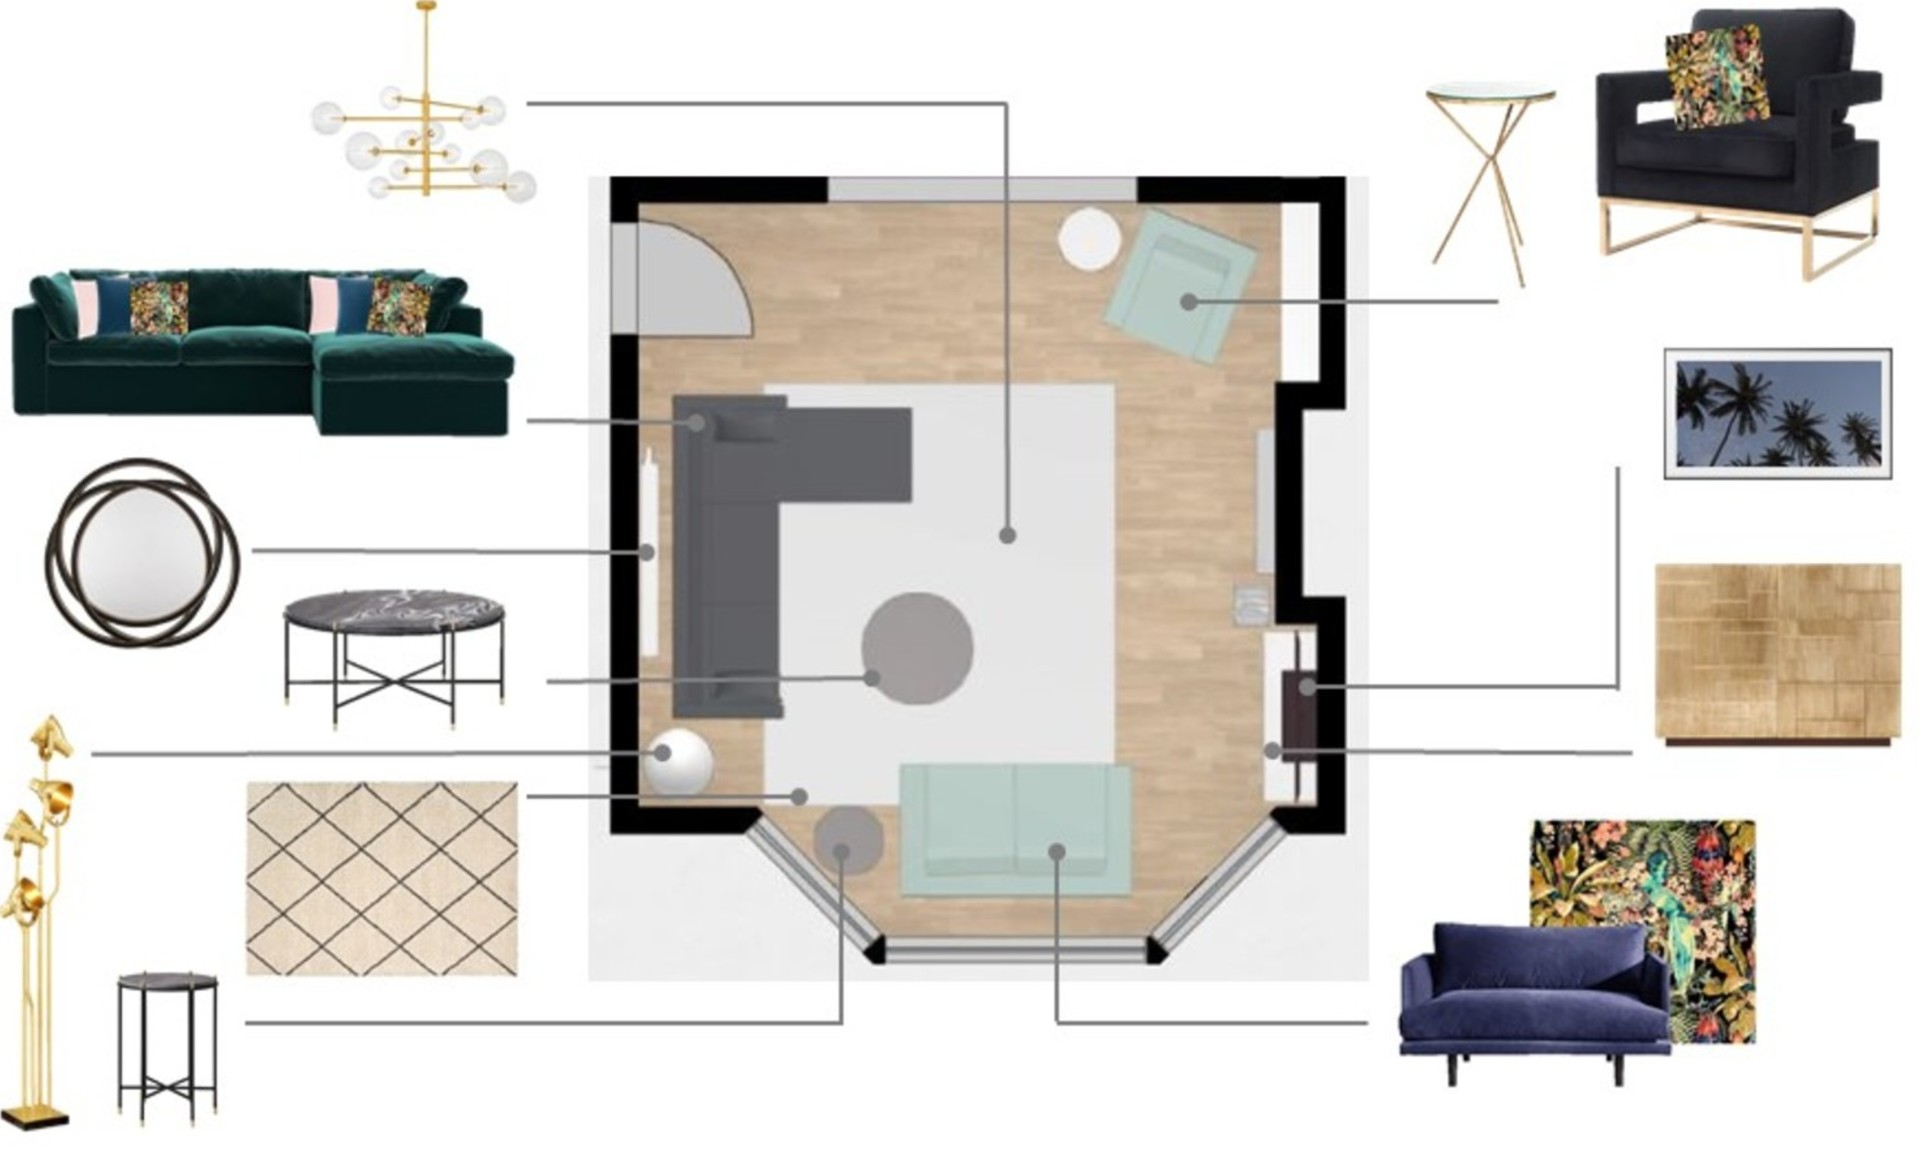 Jd living room final plan